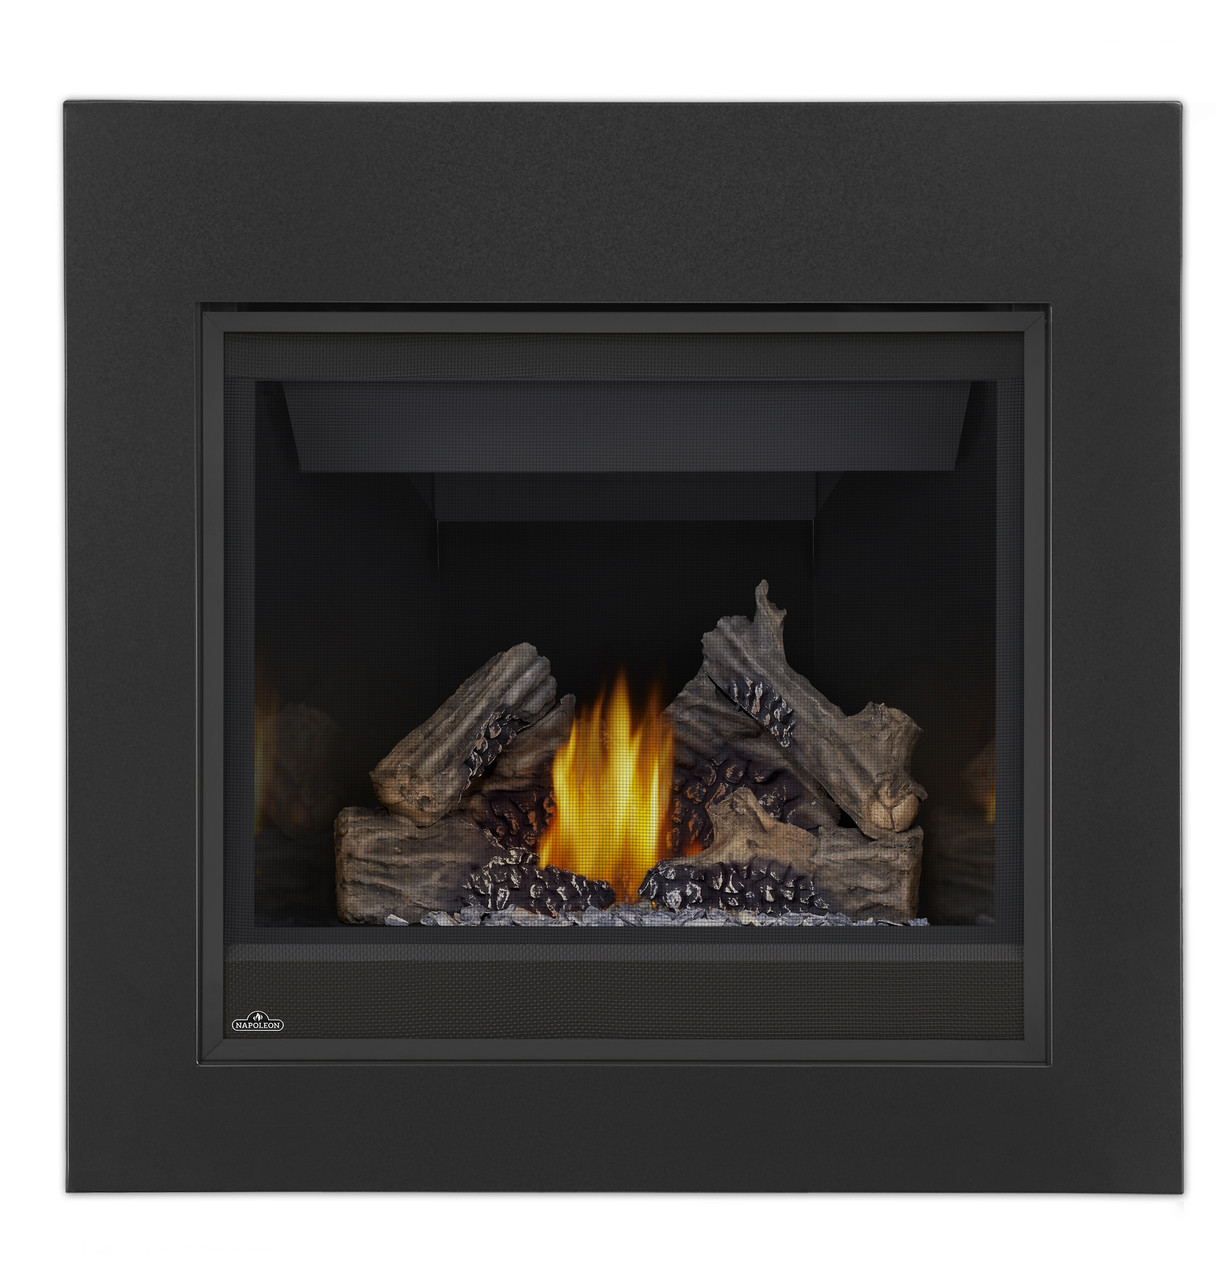 PHAZER Log Set, CFF Front, MIRRO-FLAME Porcelain Reflective Radiant Panels